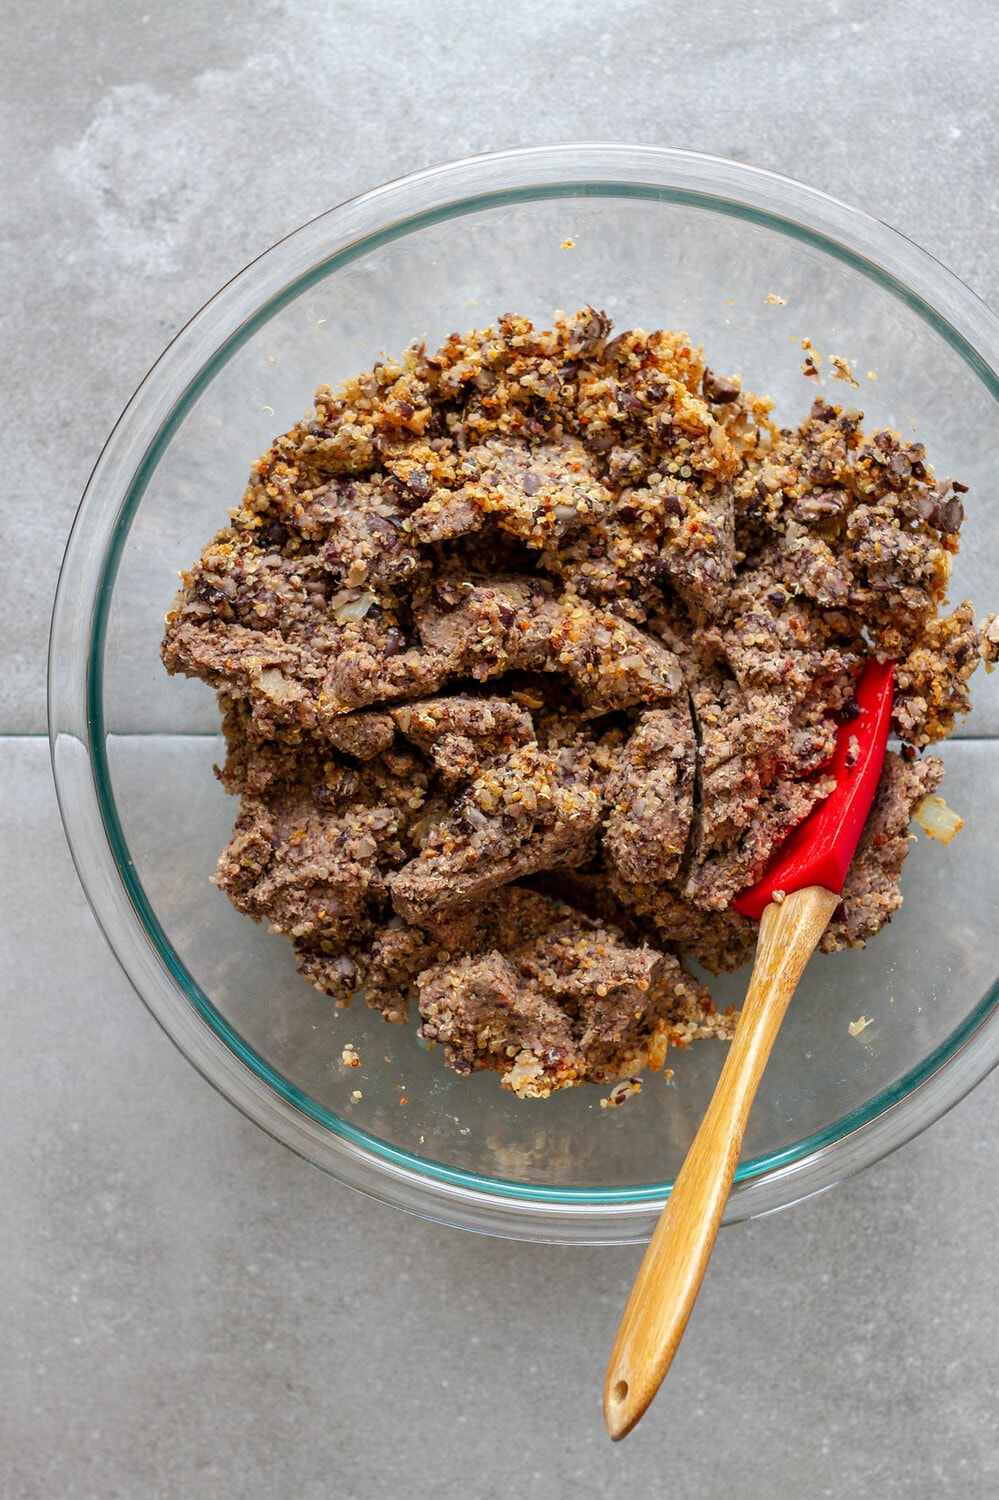 processed black bean burger ingredients in a large glass bowl and mashed together.